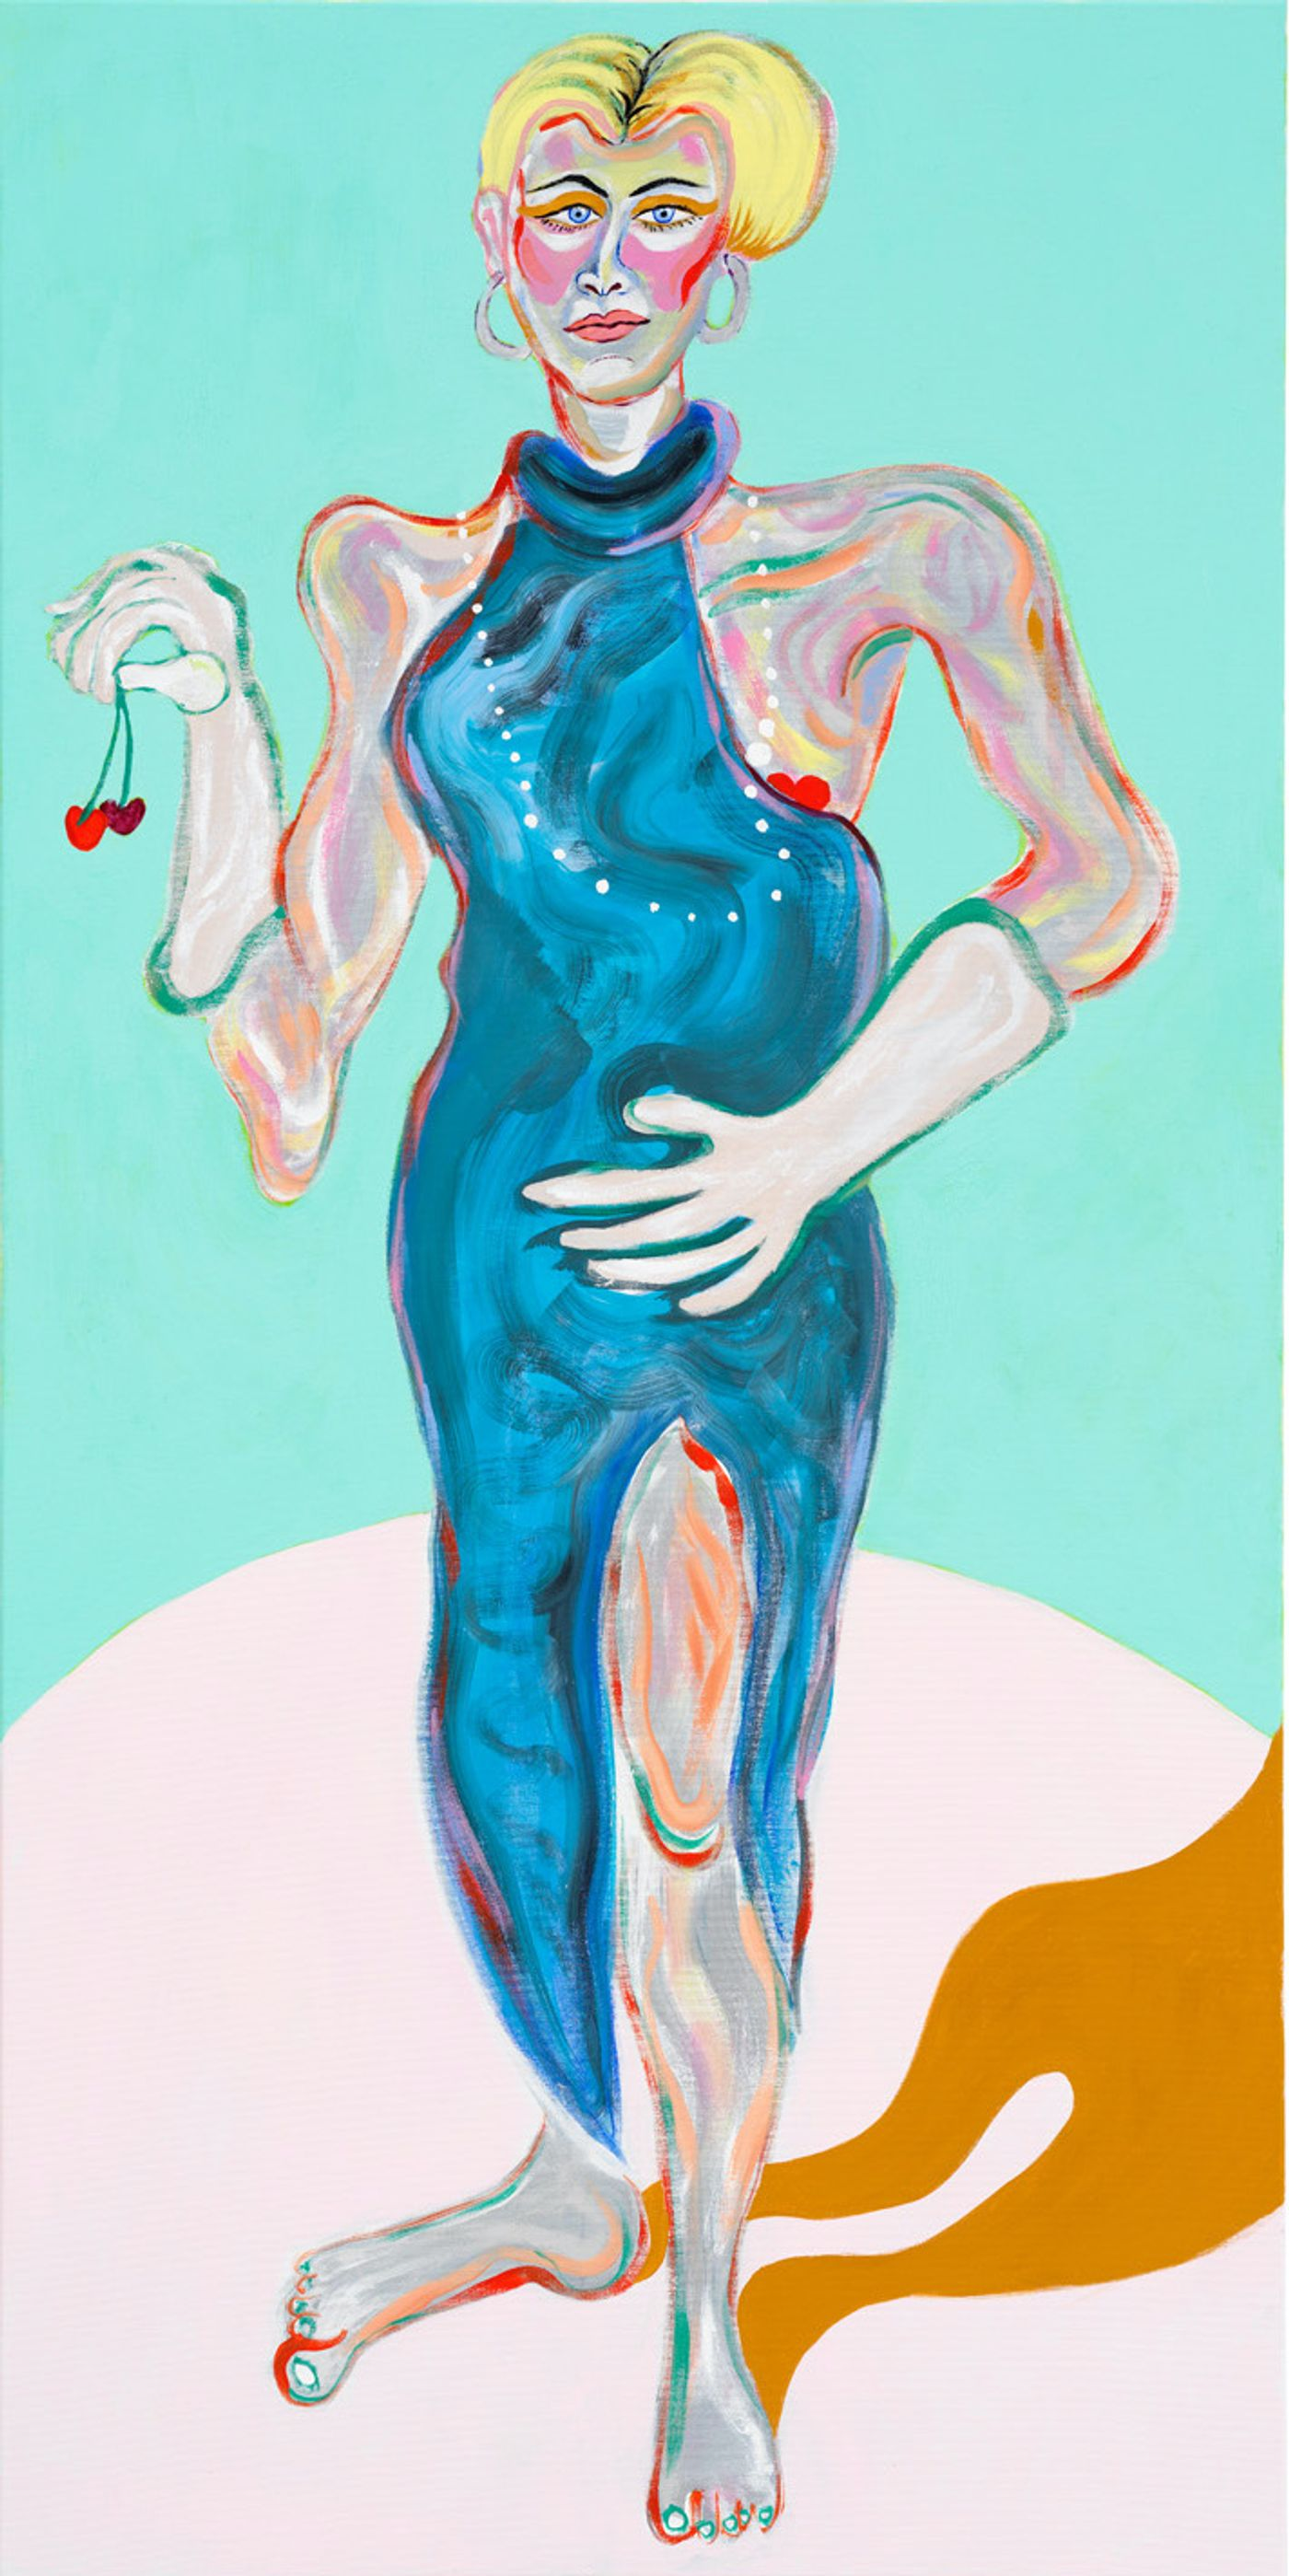 Image of Sveta Dancing with Cherries, 2020: Gouache and acrylic on canvas